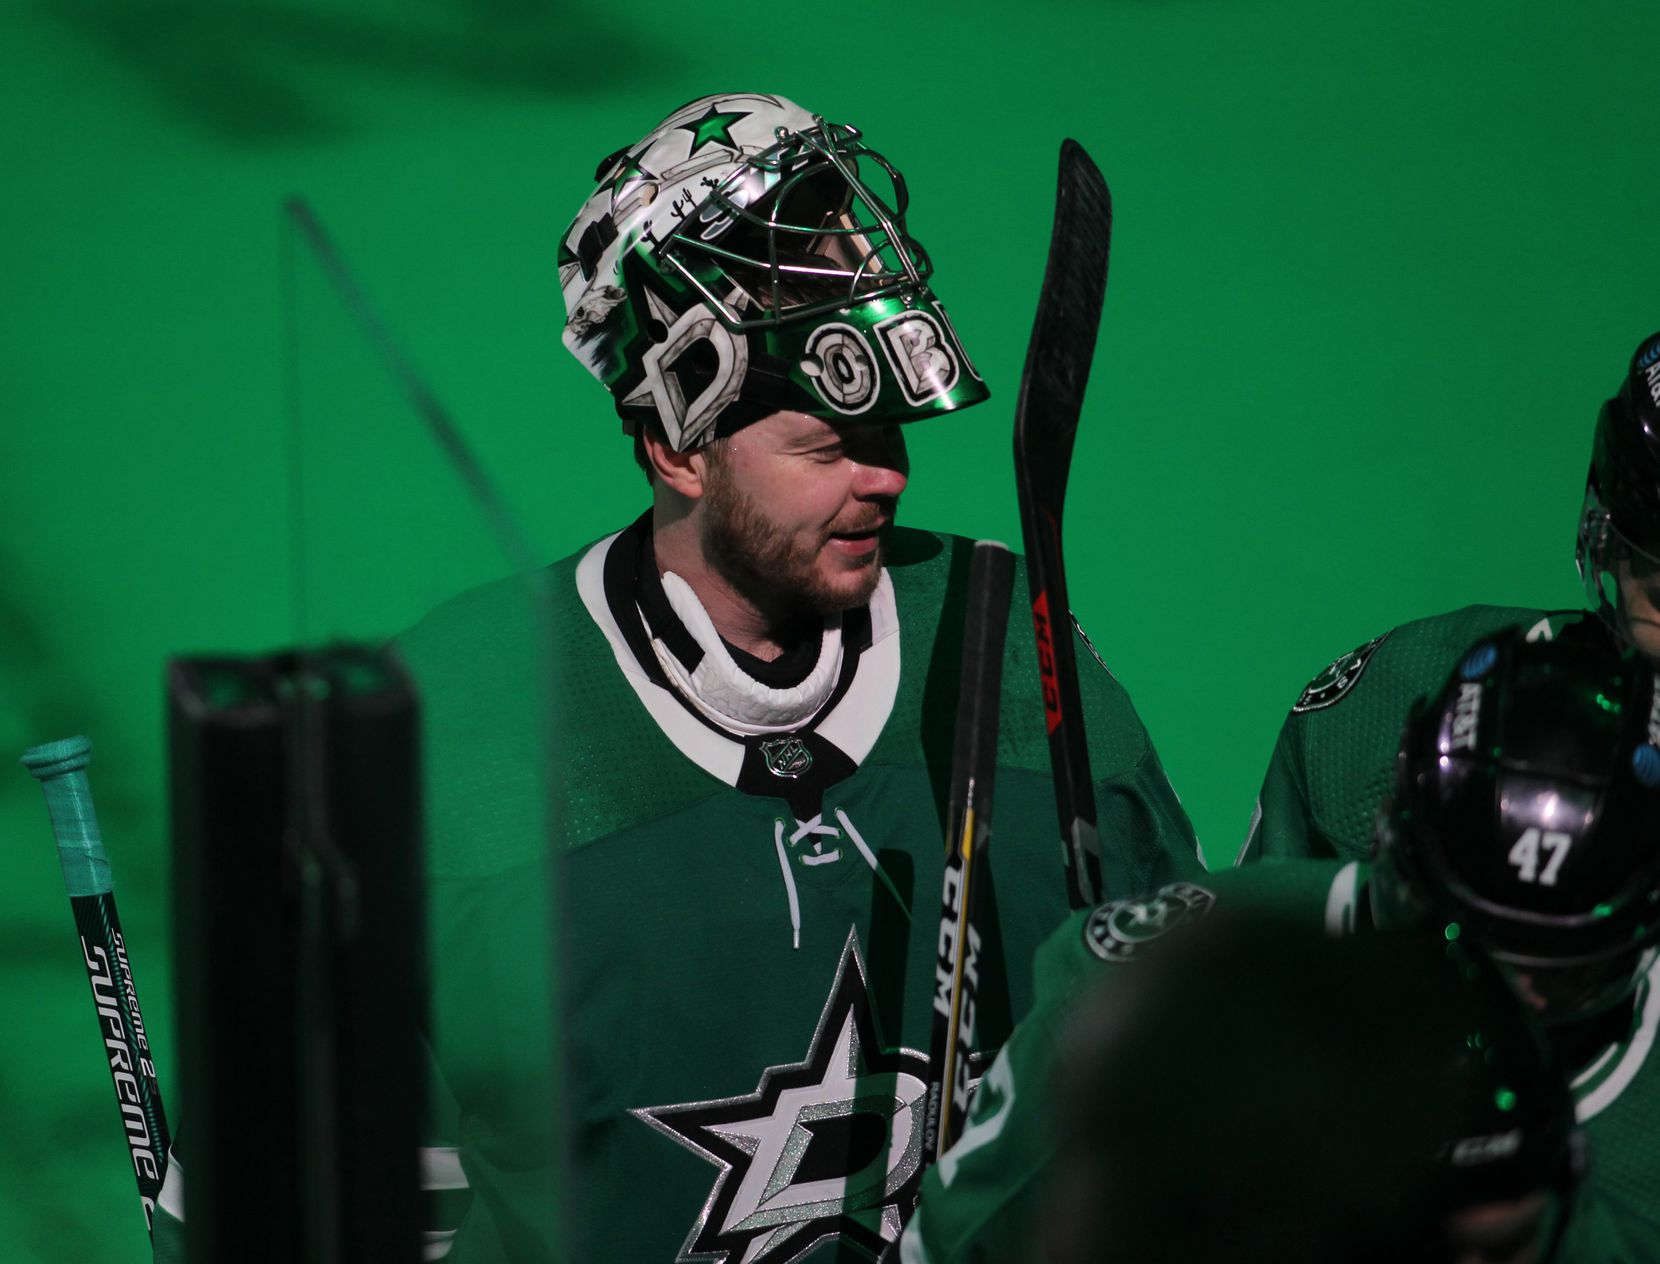 Dallas Stars goalie Anton Khudobin (35) sports a smile following the Stars' 3-2 victory over the Nashville Predators.The two teams played their NHL game at the American Airlines Center in Dallas on January 24 , 2021. (Steve Hamm/ Special Contributor)